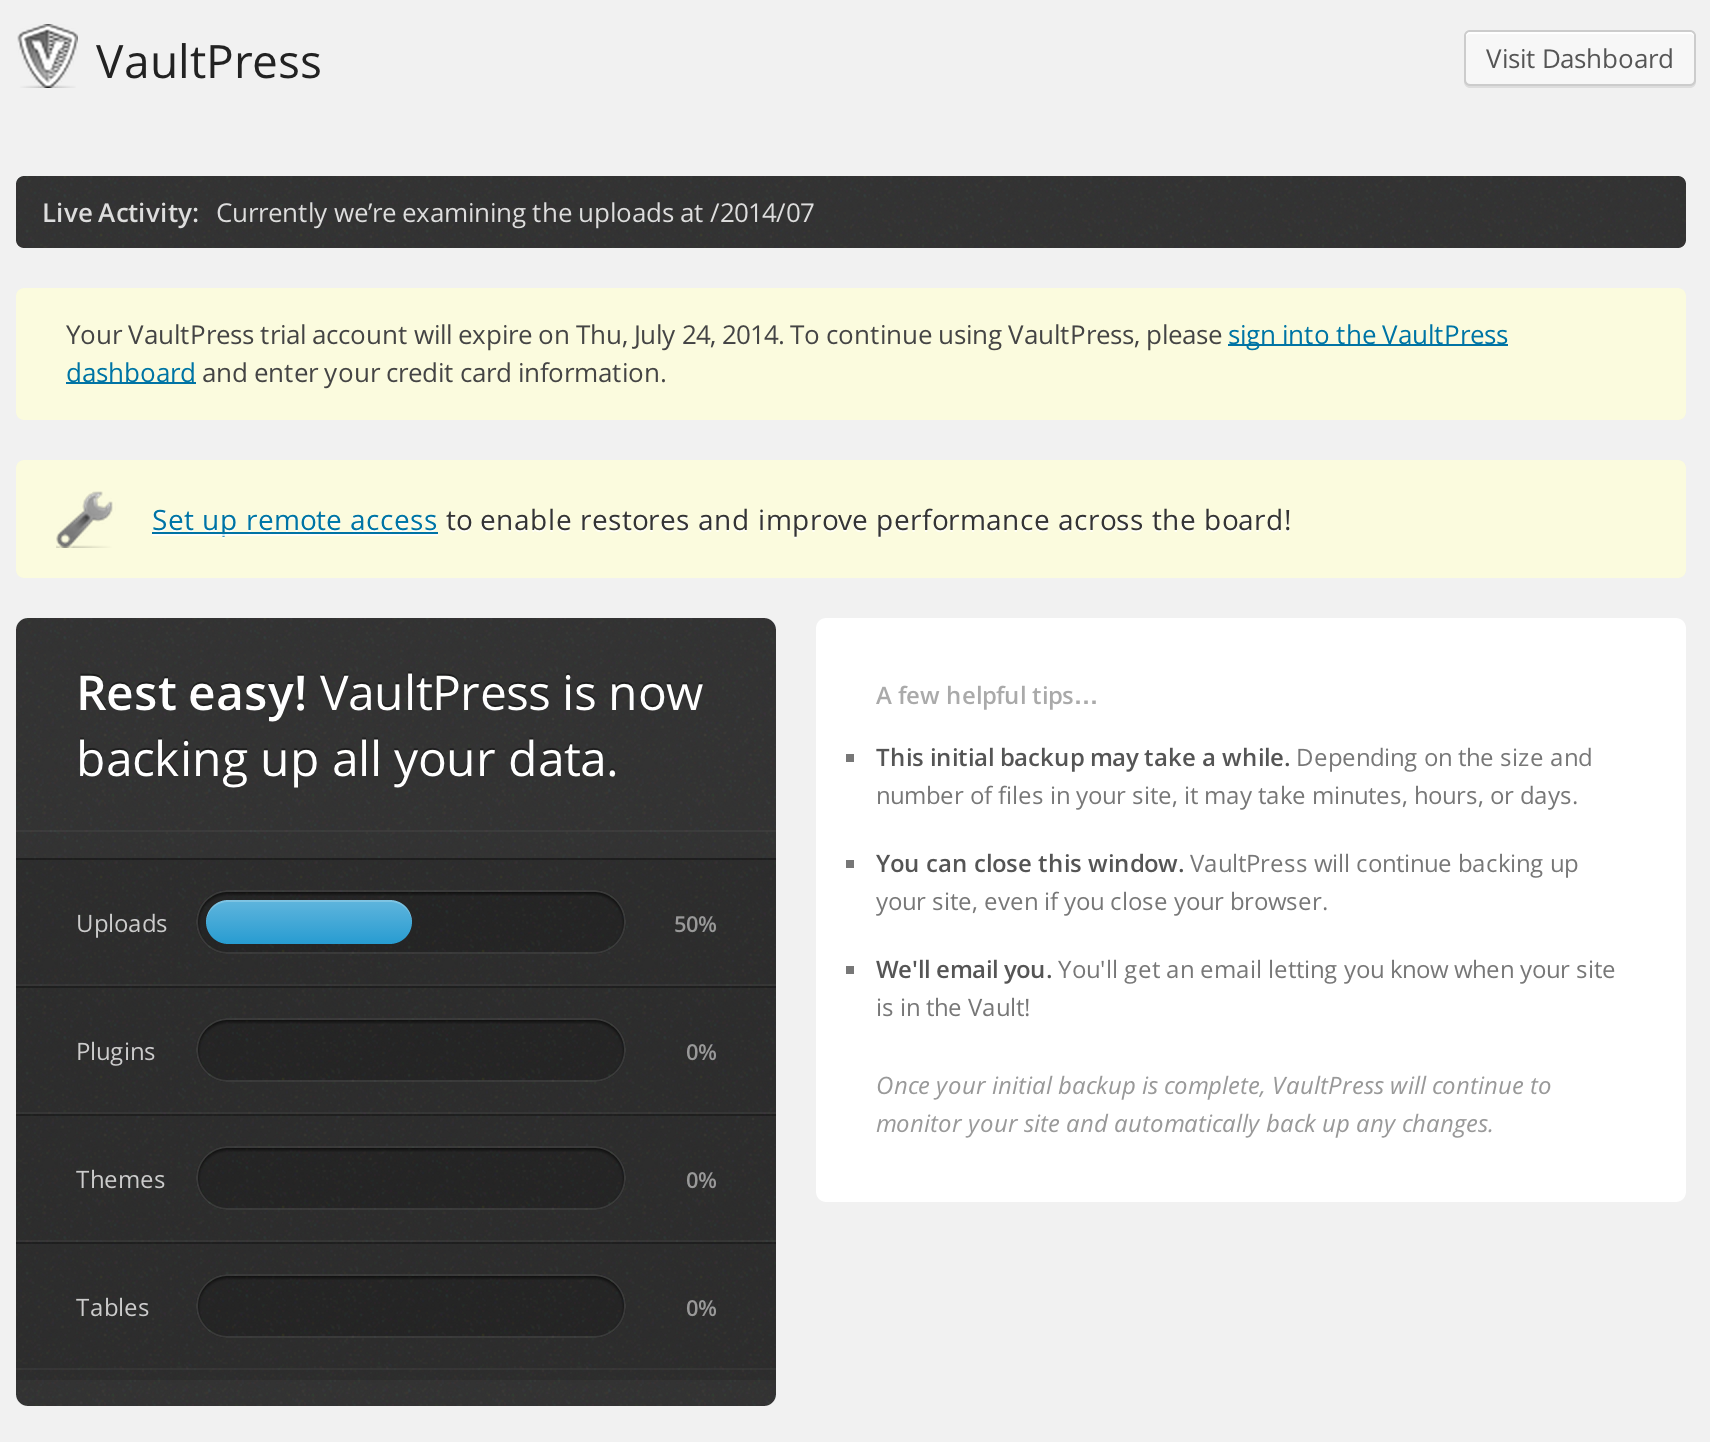 Connect through Jetpack for a free 5-day VaultPress Trial